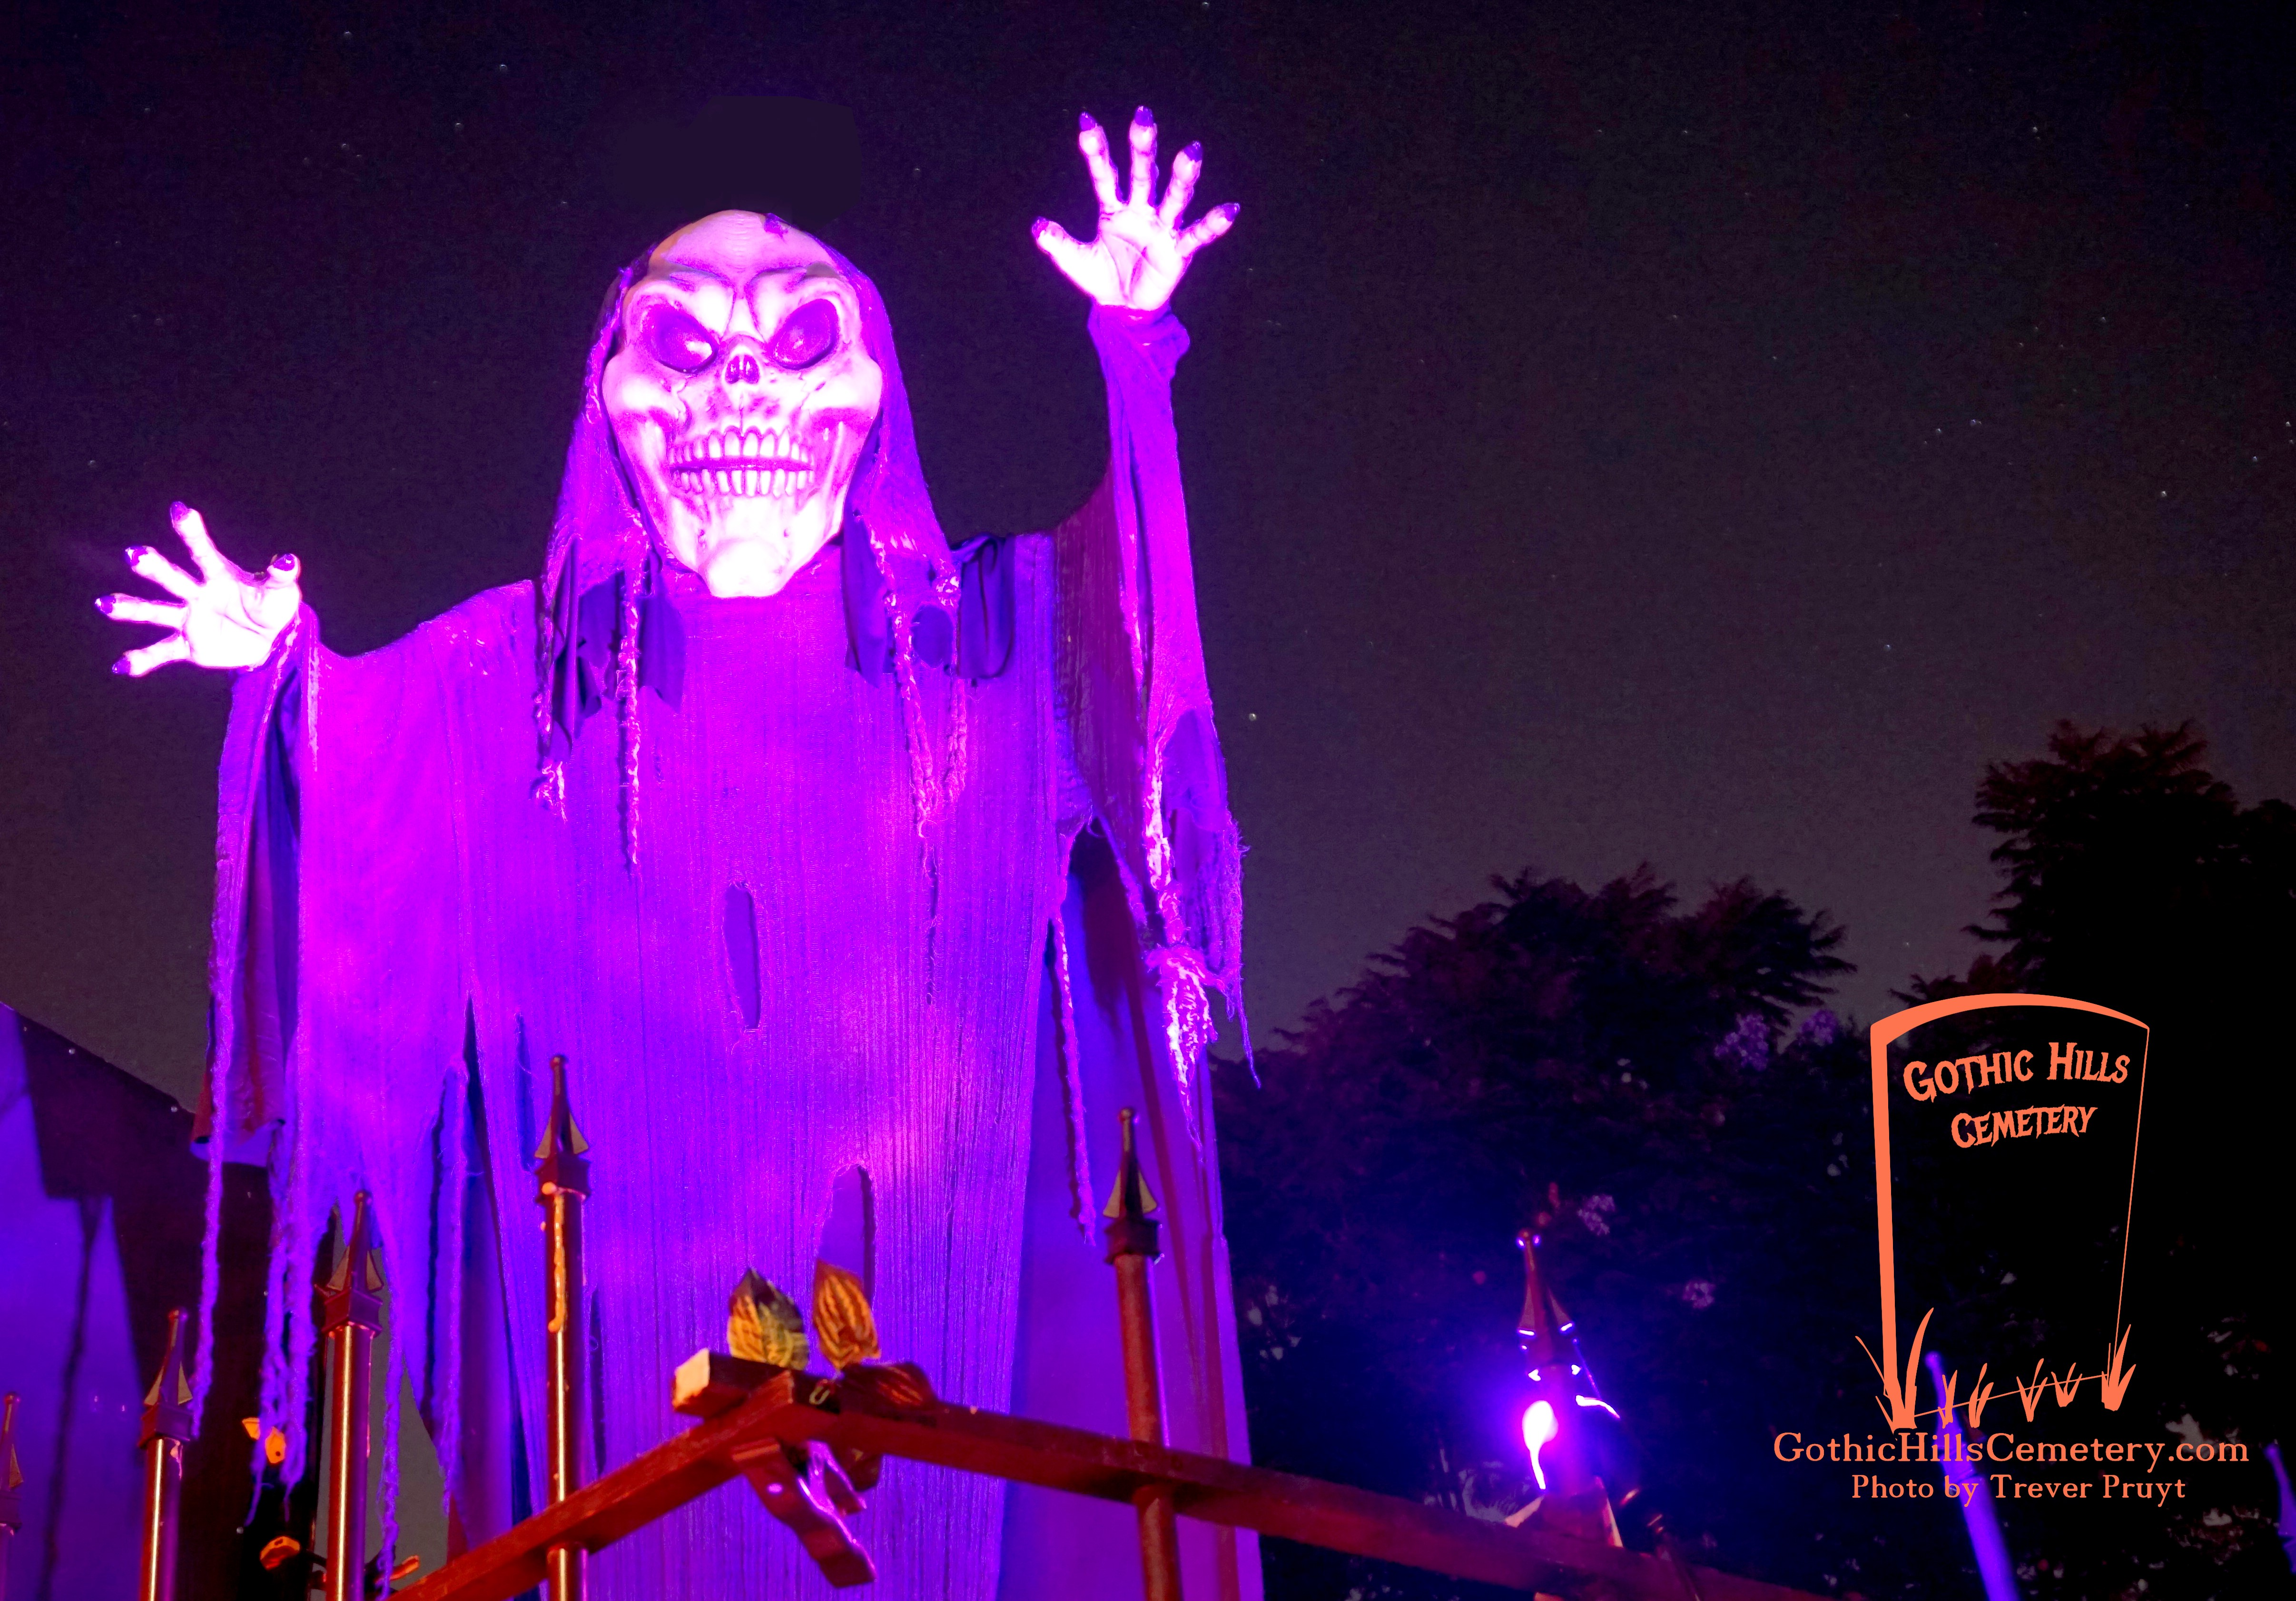 Gothic Hills Cemetery Haunted House